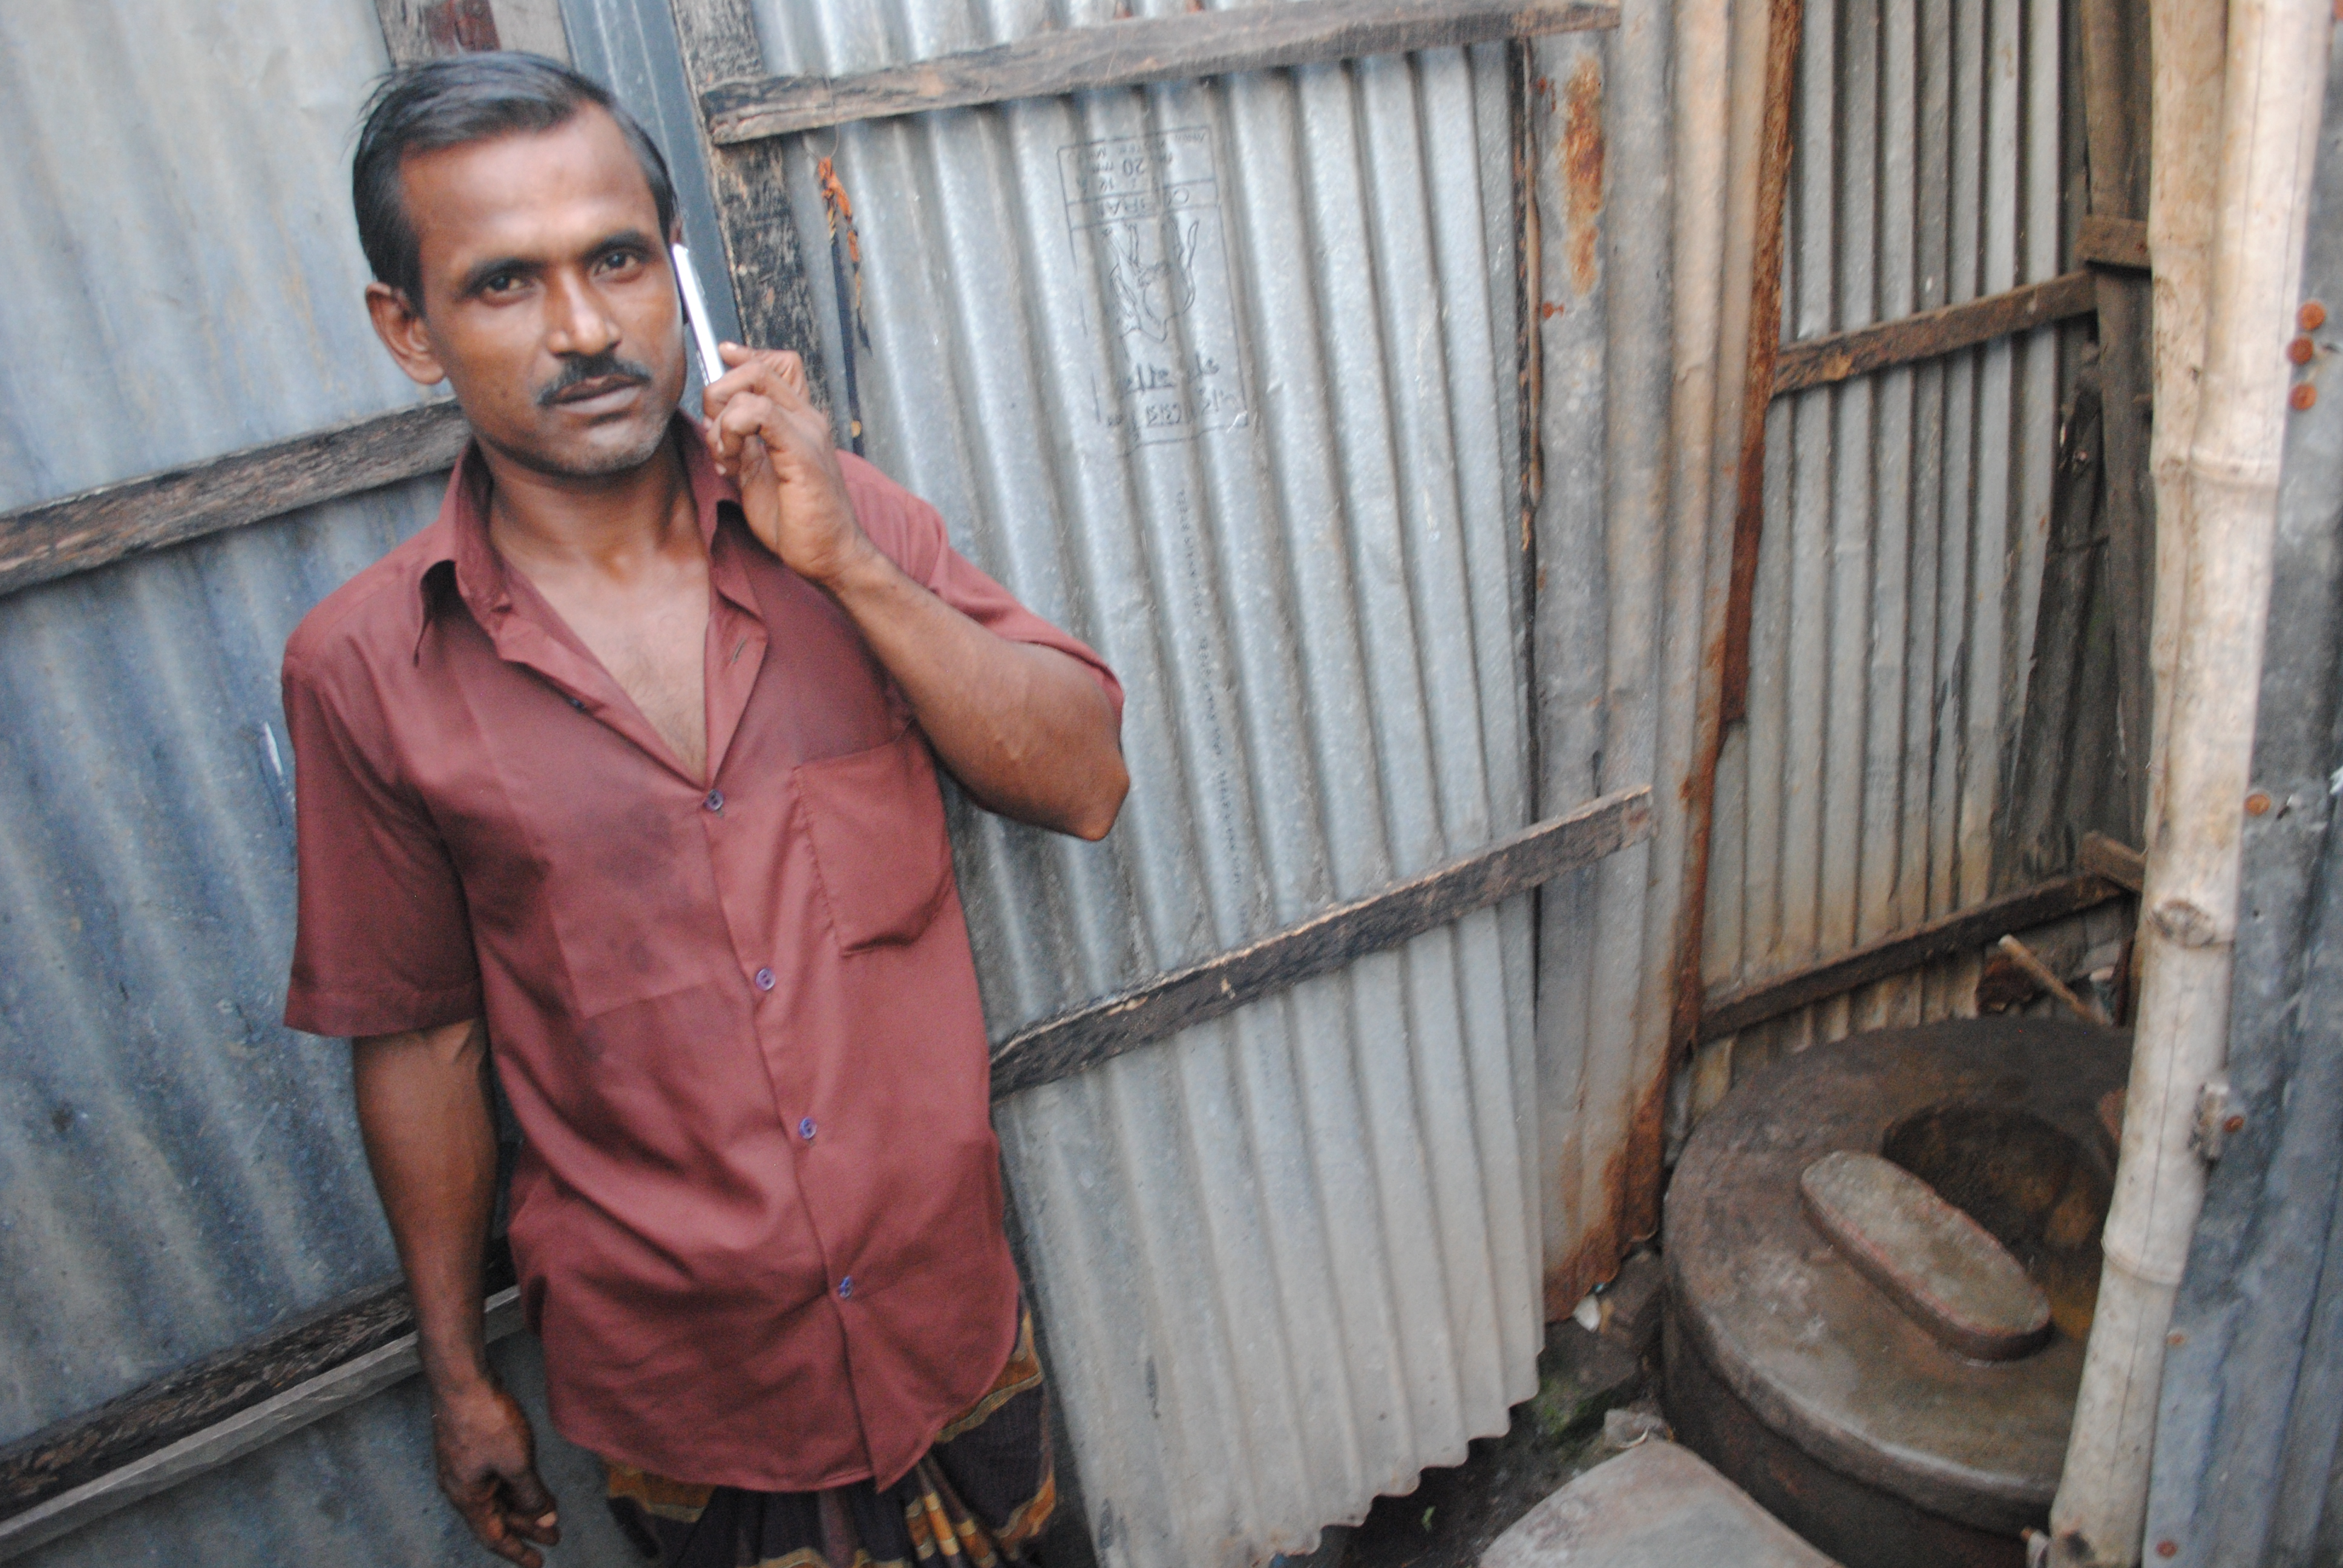 Abdul Malik, a 35-year-old rickshaw puller from Dhaka, shares a communal toilet with six families in the slums. Mobile phone usage has surged in recent years, while latrine usage has lagged